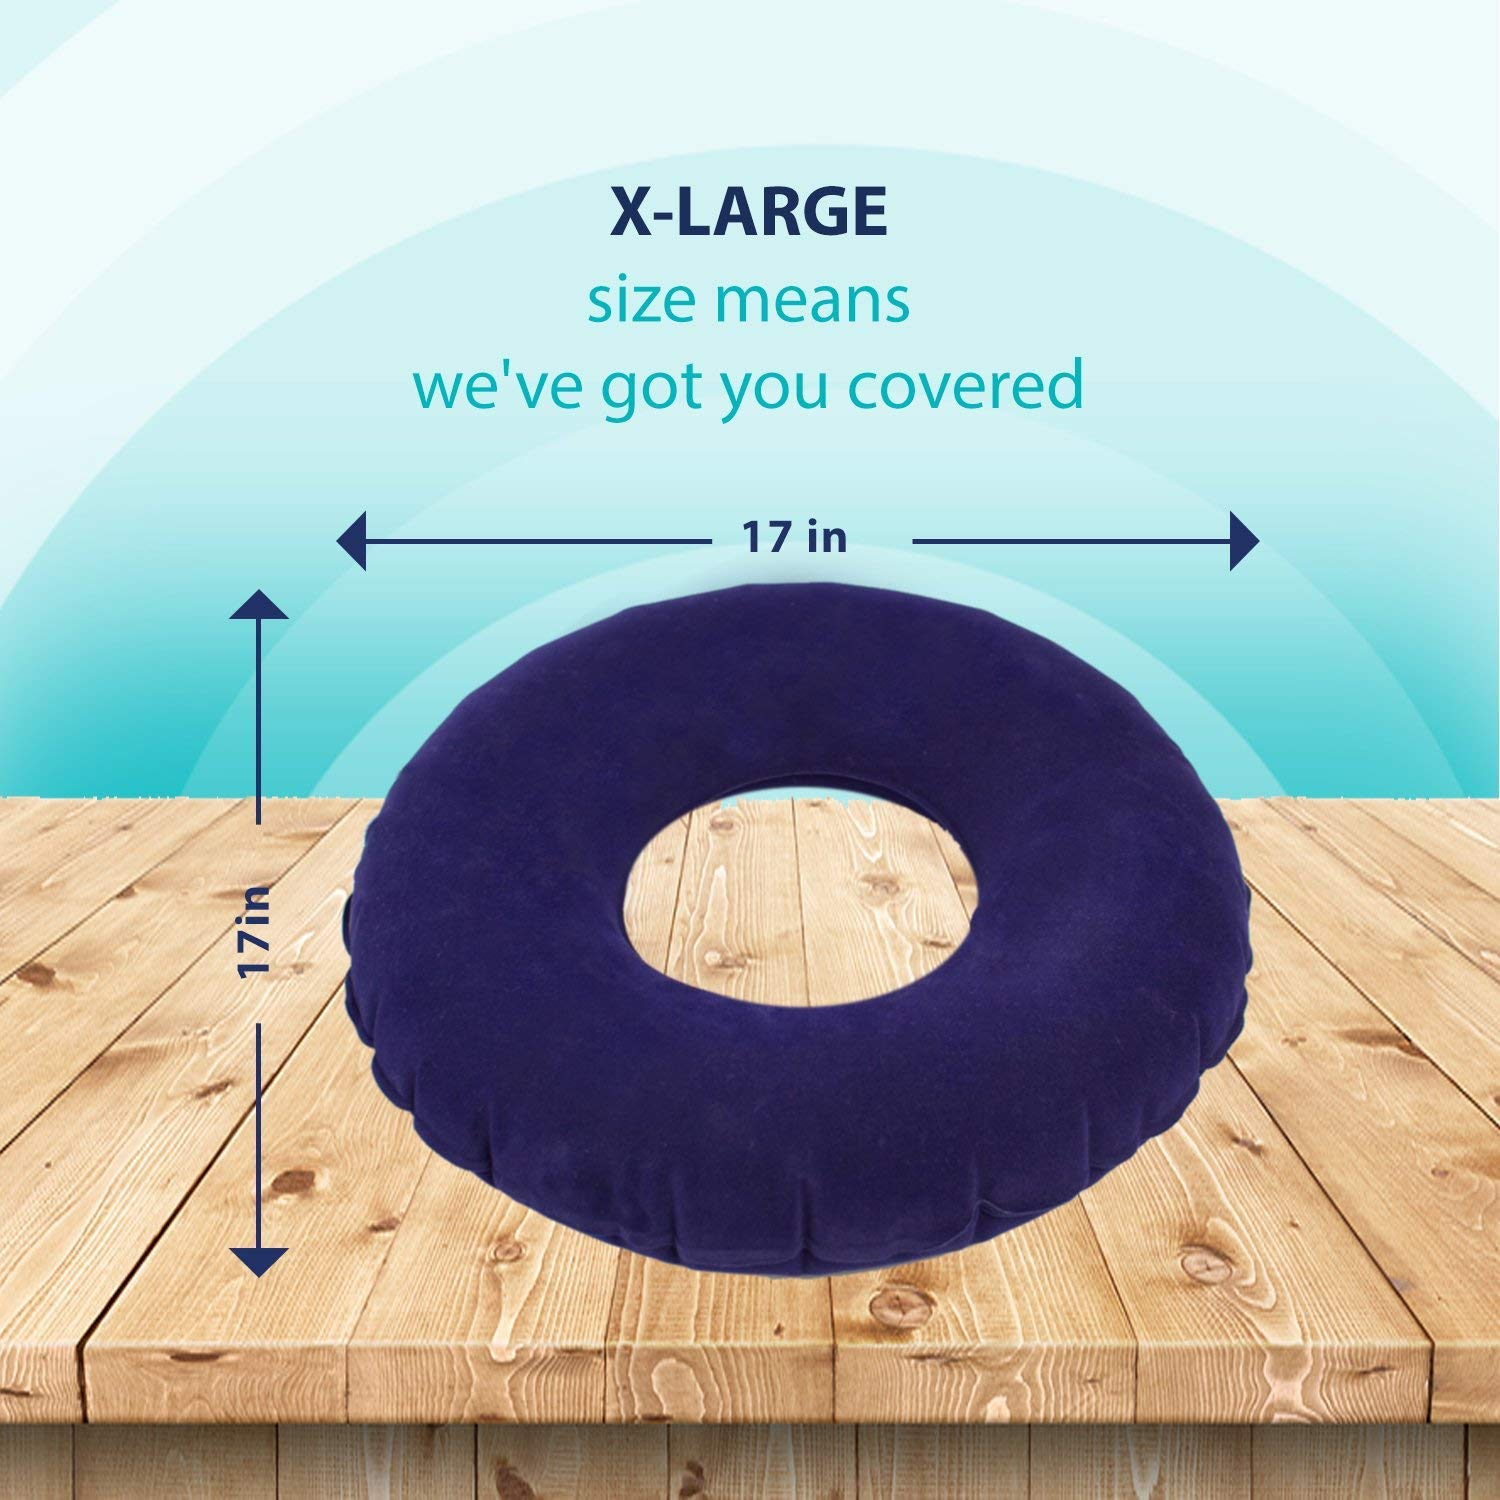 MedAttic 2-Pieces Superior Comfort Donut Cushion Seat, 15'' Orthopedic Medical Inflatable Ring Pillow for Bed Pressure Sores, Tailbone Pain, Hemorrhoids, Coccyx, Child Birth, Prostatitis